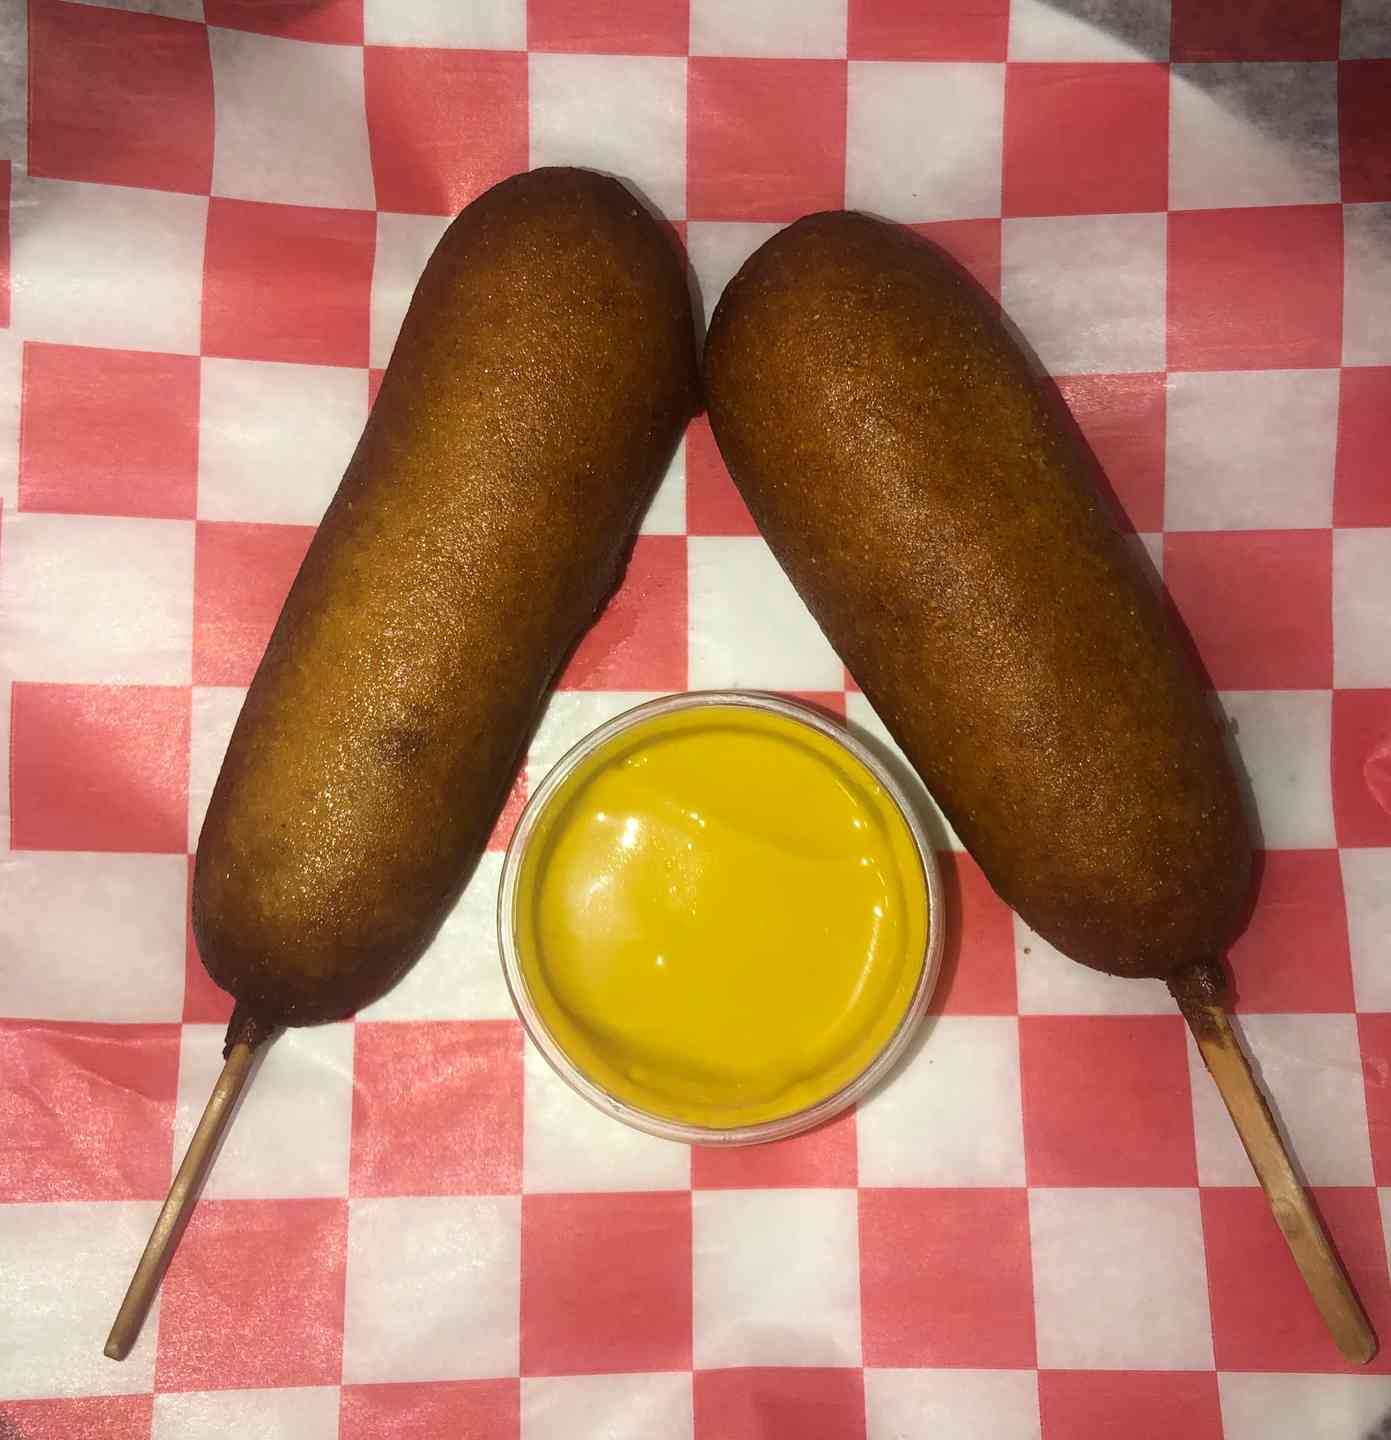 Large Corn Dogs on a Stick